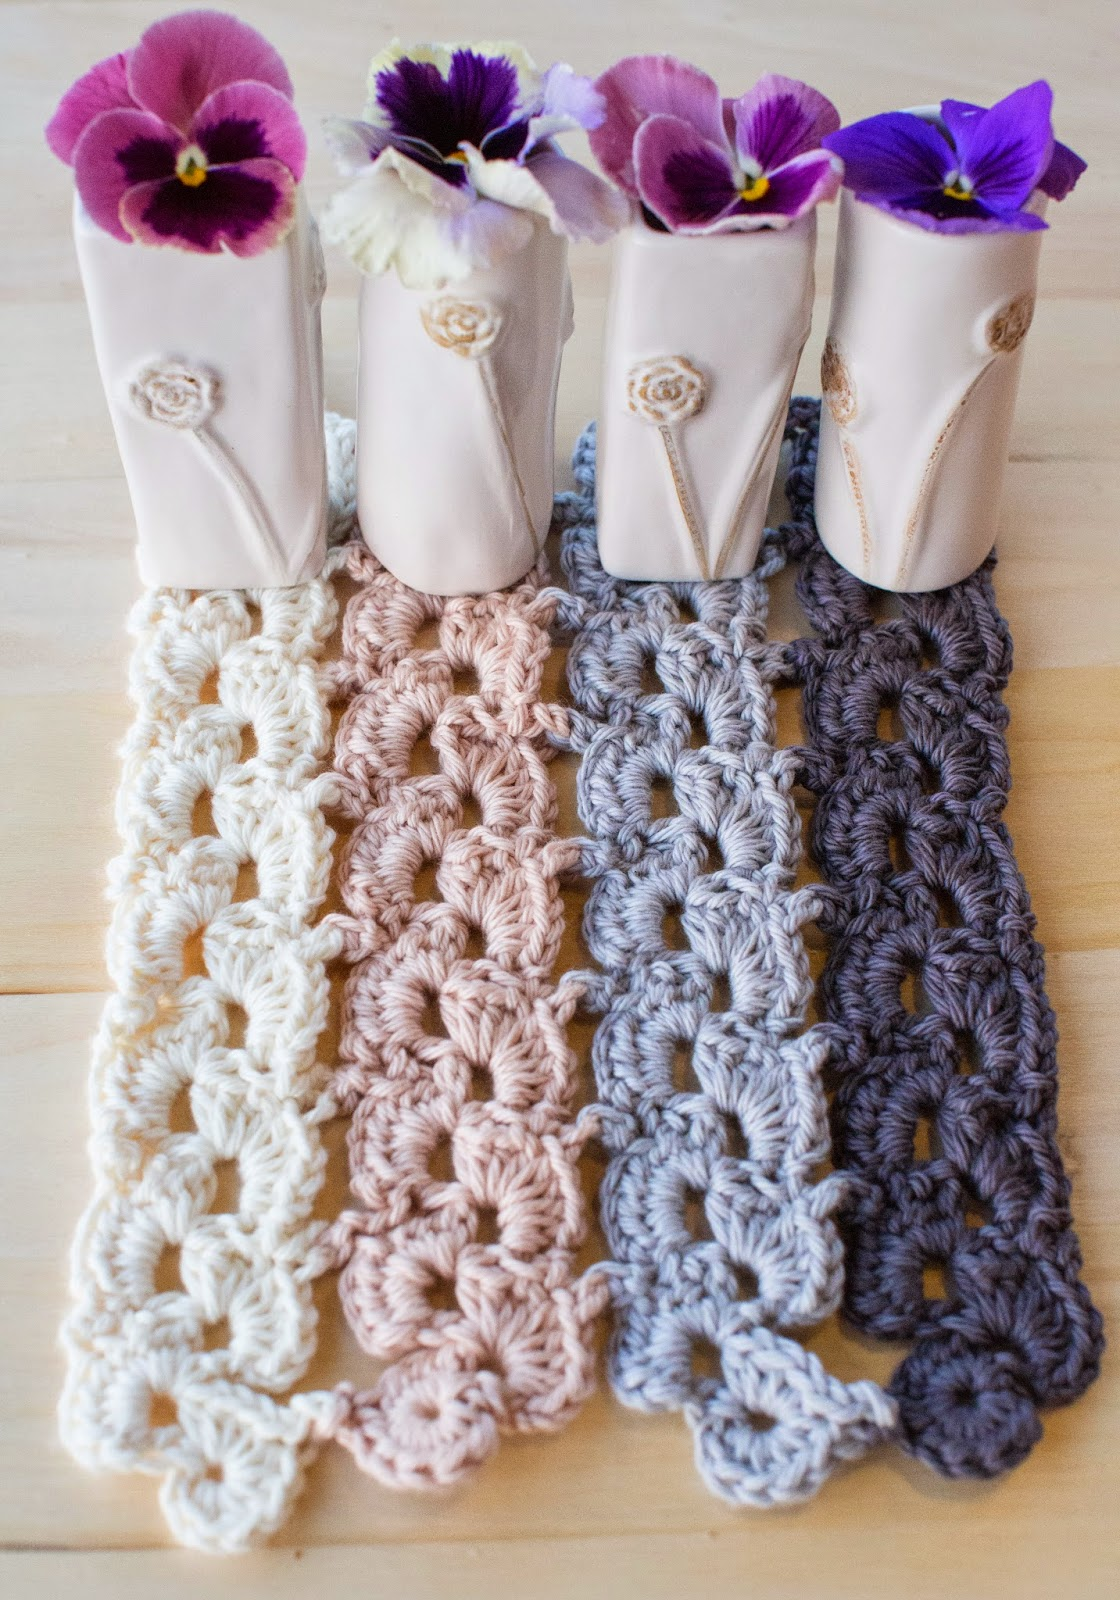 Pansy Parade Blanket Crochet Pattern by Susan Carlson (Photo used courtesy of R&L Crochet Co.)